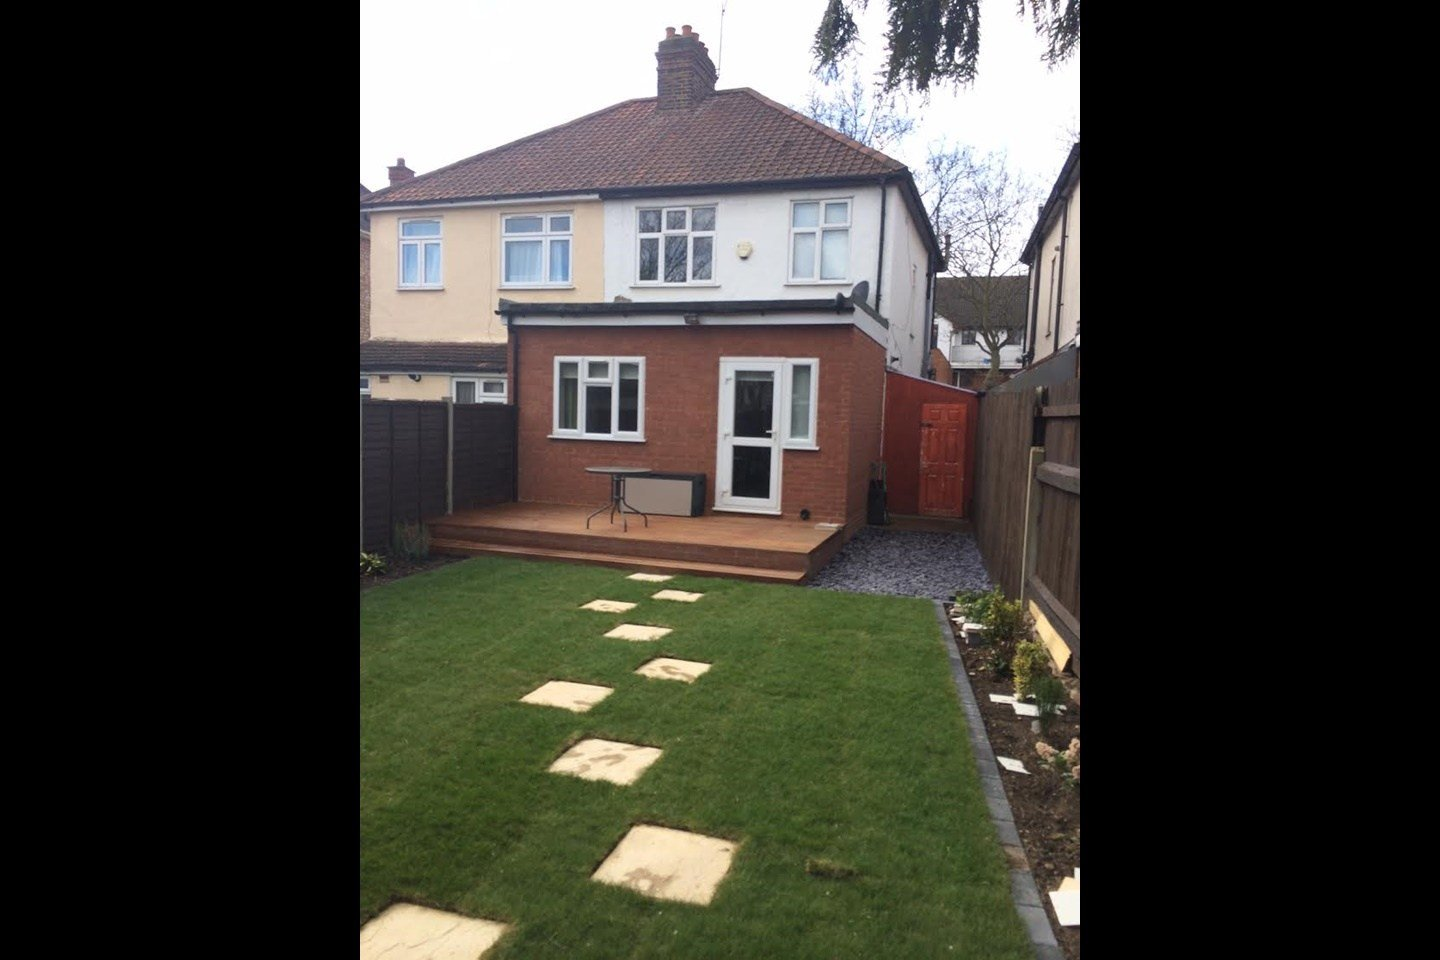 Best Hounslow 4 Bed Semi Detached House Maswell Park Road Tw3 To Rent Now For £1 750 00 P M With Pictures